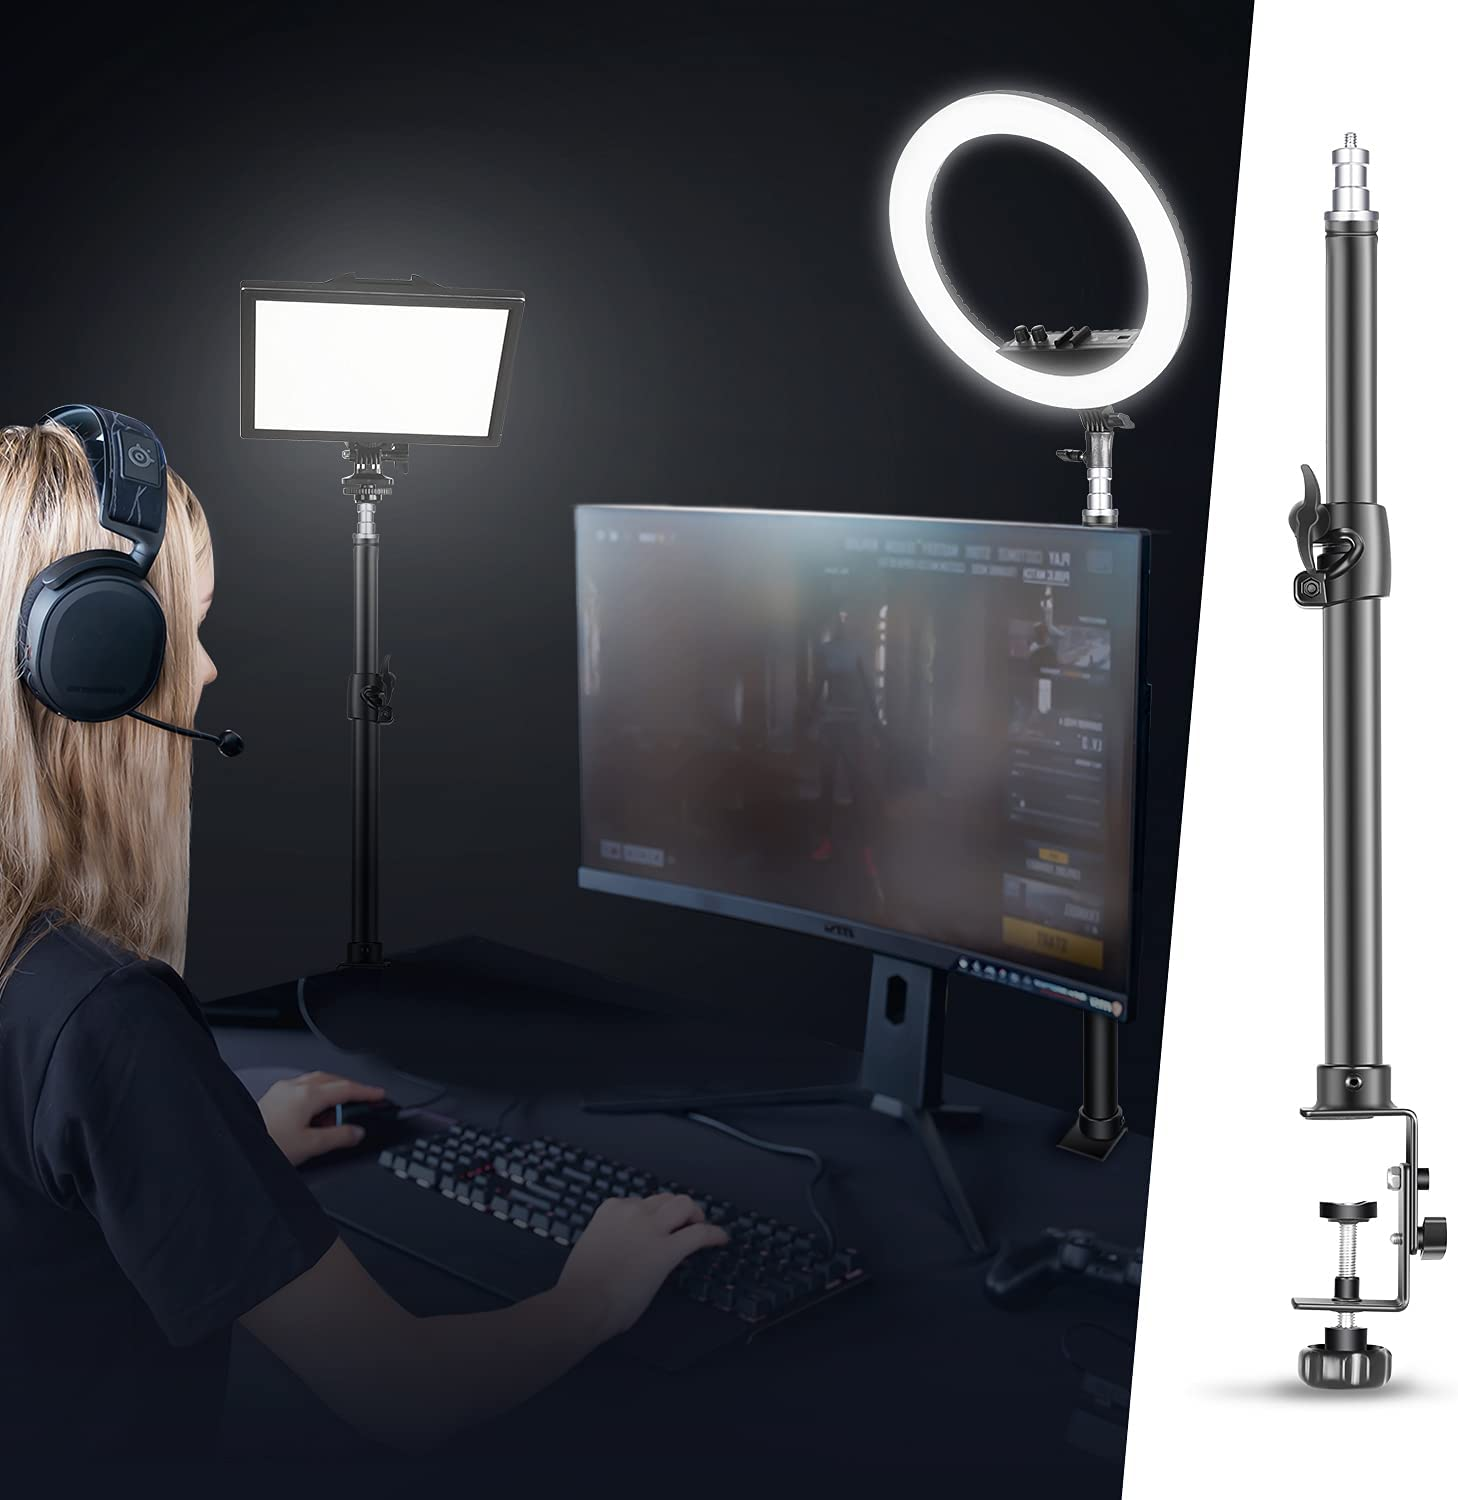 Tampa Mall Neewer Tabletop Light Stand Clip with Screw for Ri 4inch 1 Max 60% OFF